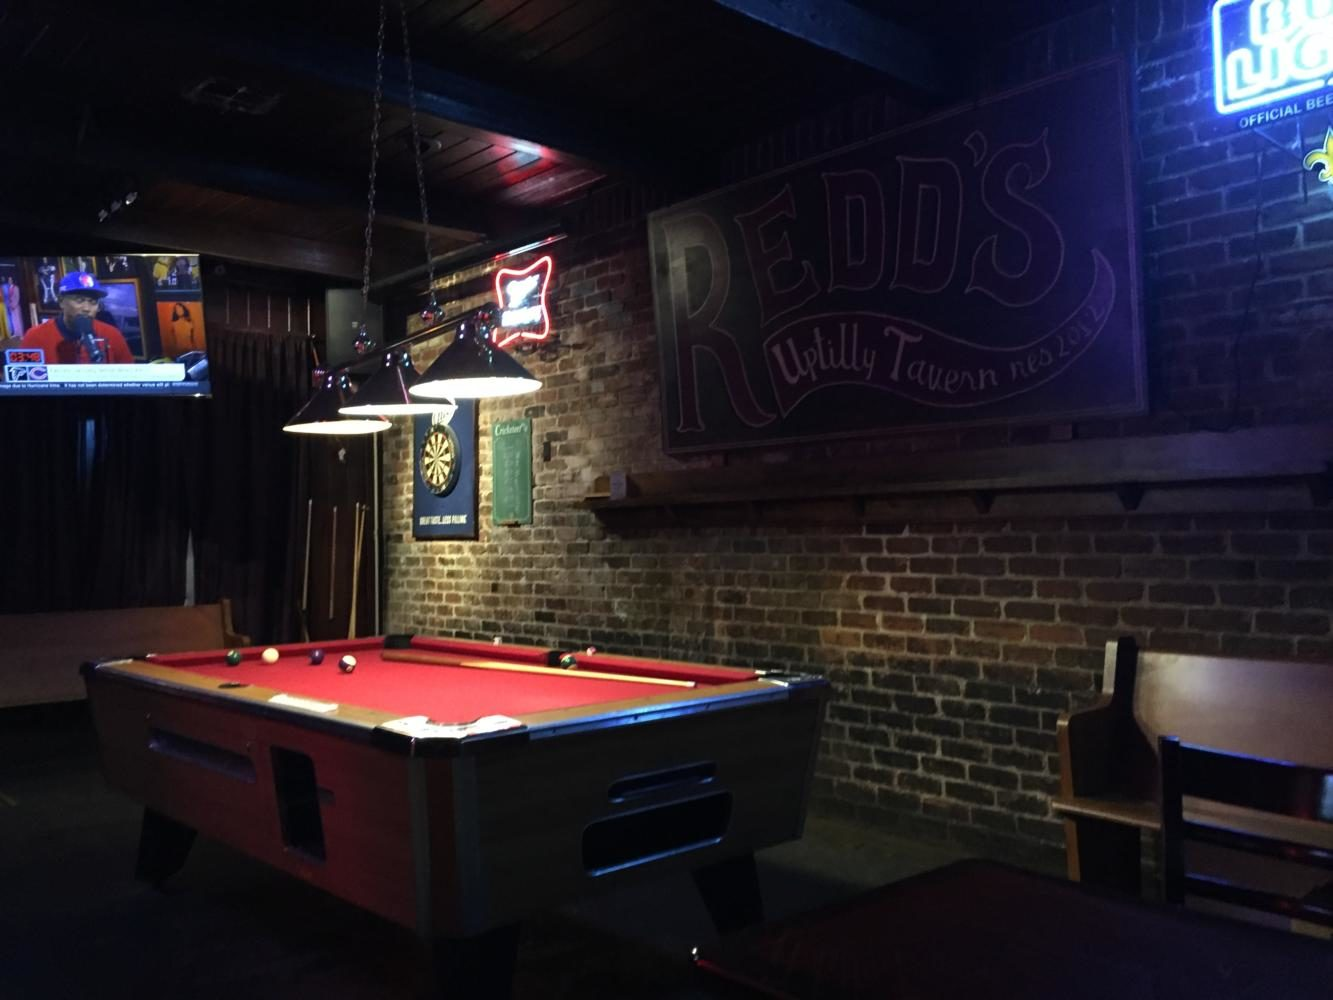 The+pool+table+lays+idle+within+Redd%27s+Uptown+Tavern.+Reid%27s+is+one+of+several+college+hangouts+on+Maple+Street.+Photo+credit%3A+Caleb+Beck